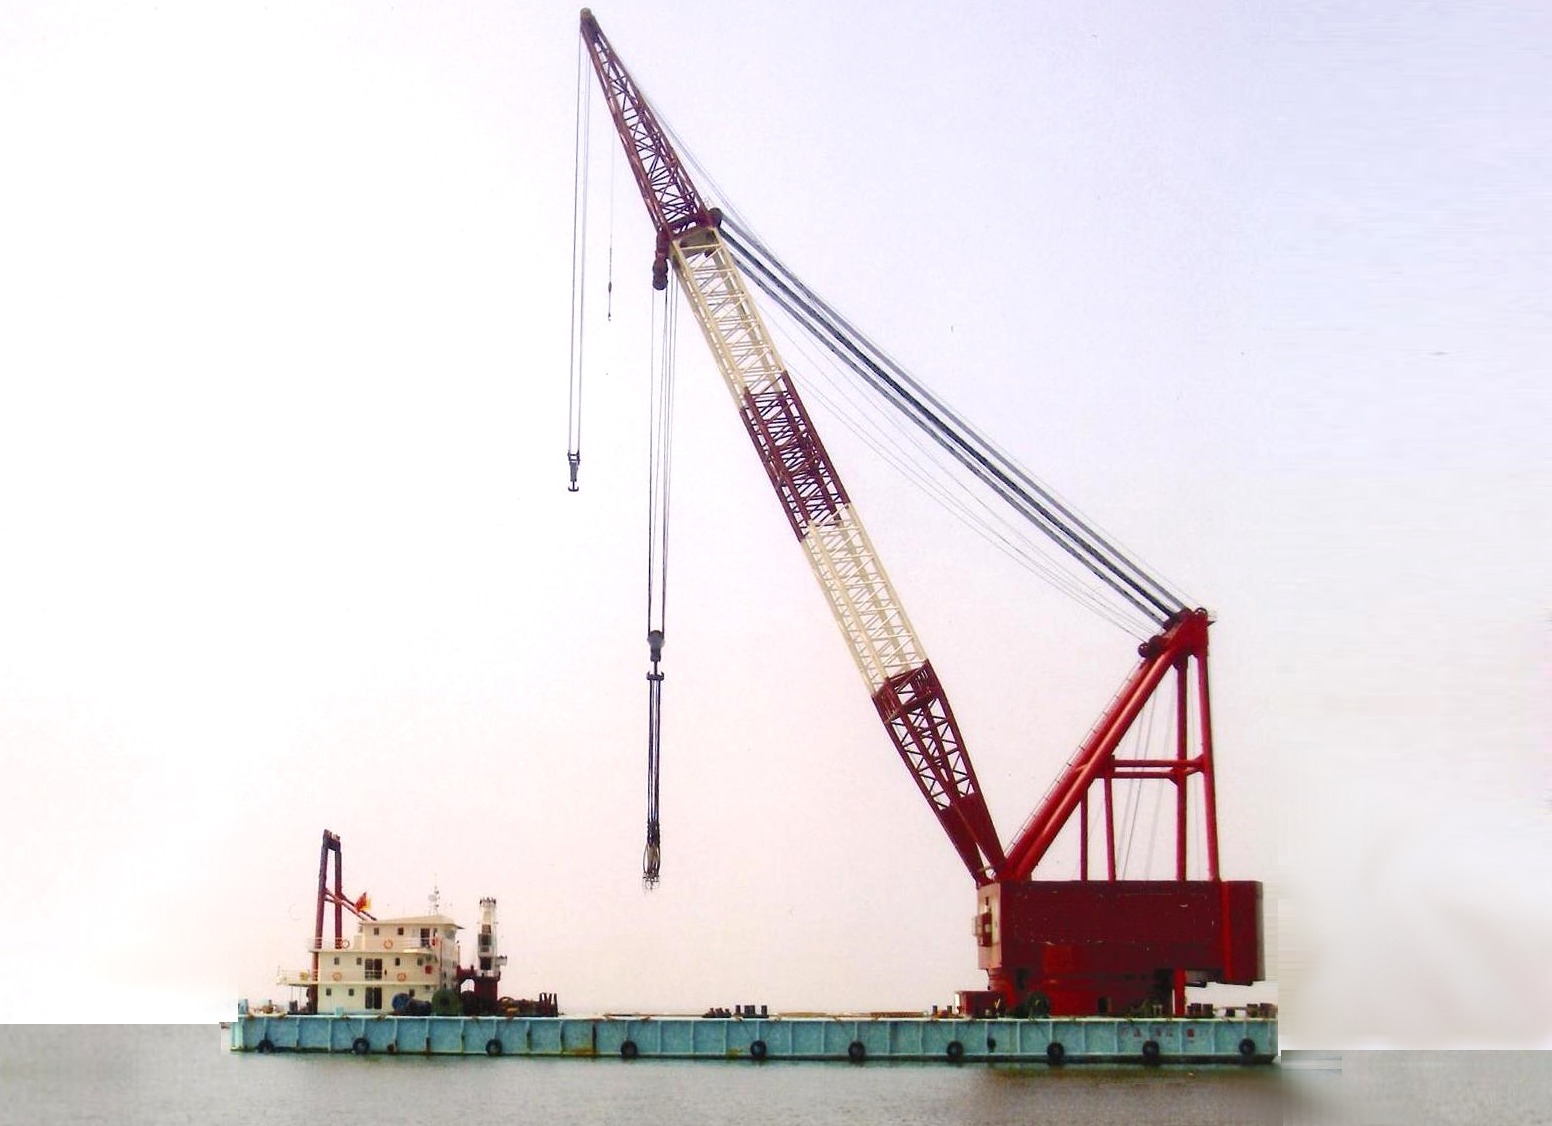 1000ton Self-Propelled Crane Vessel for Sale or Charter